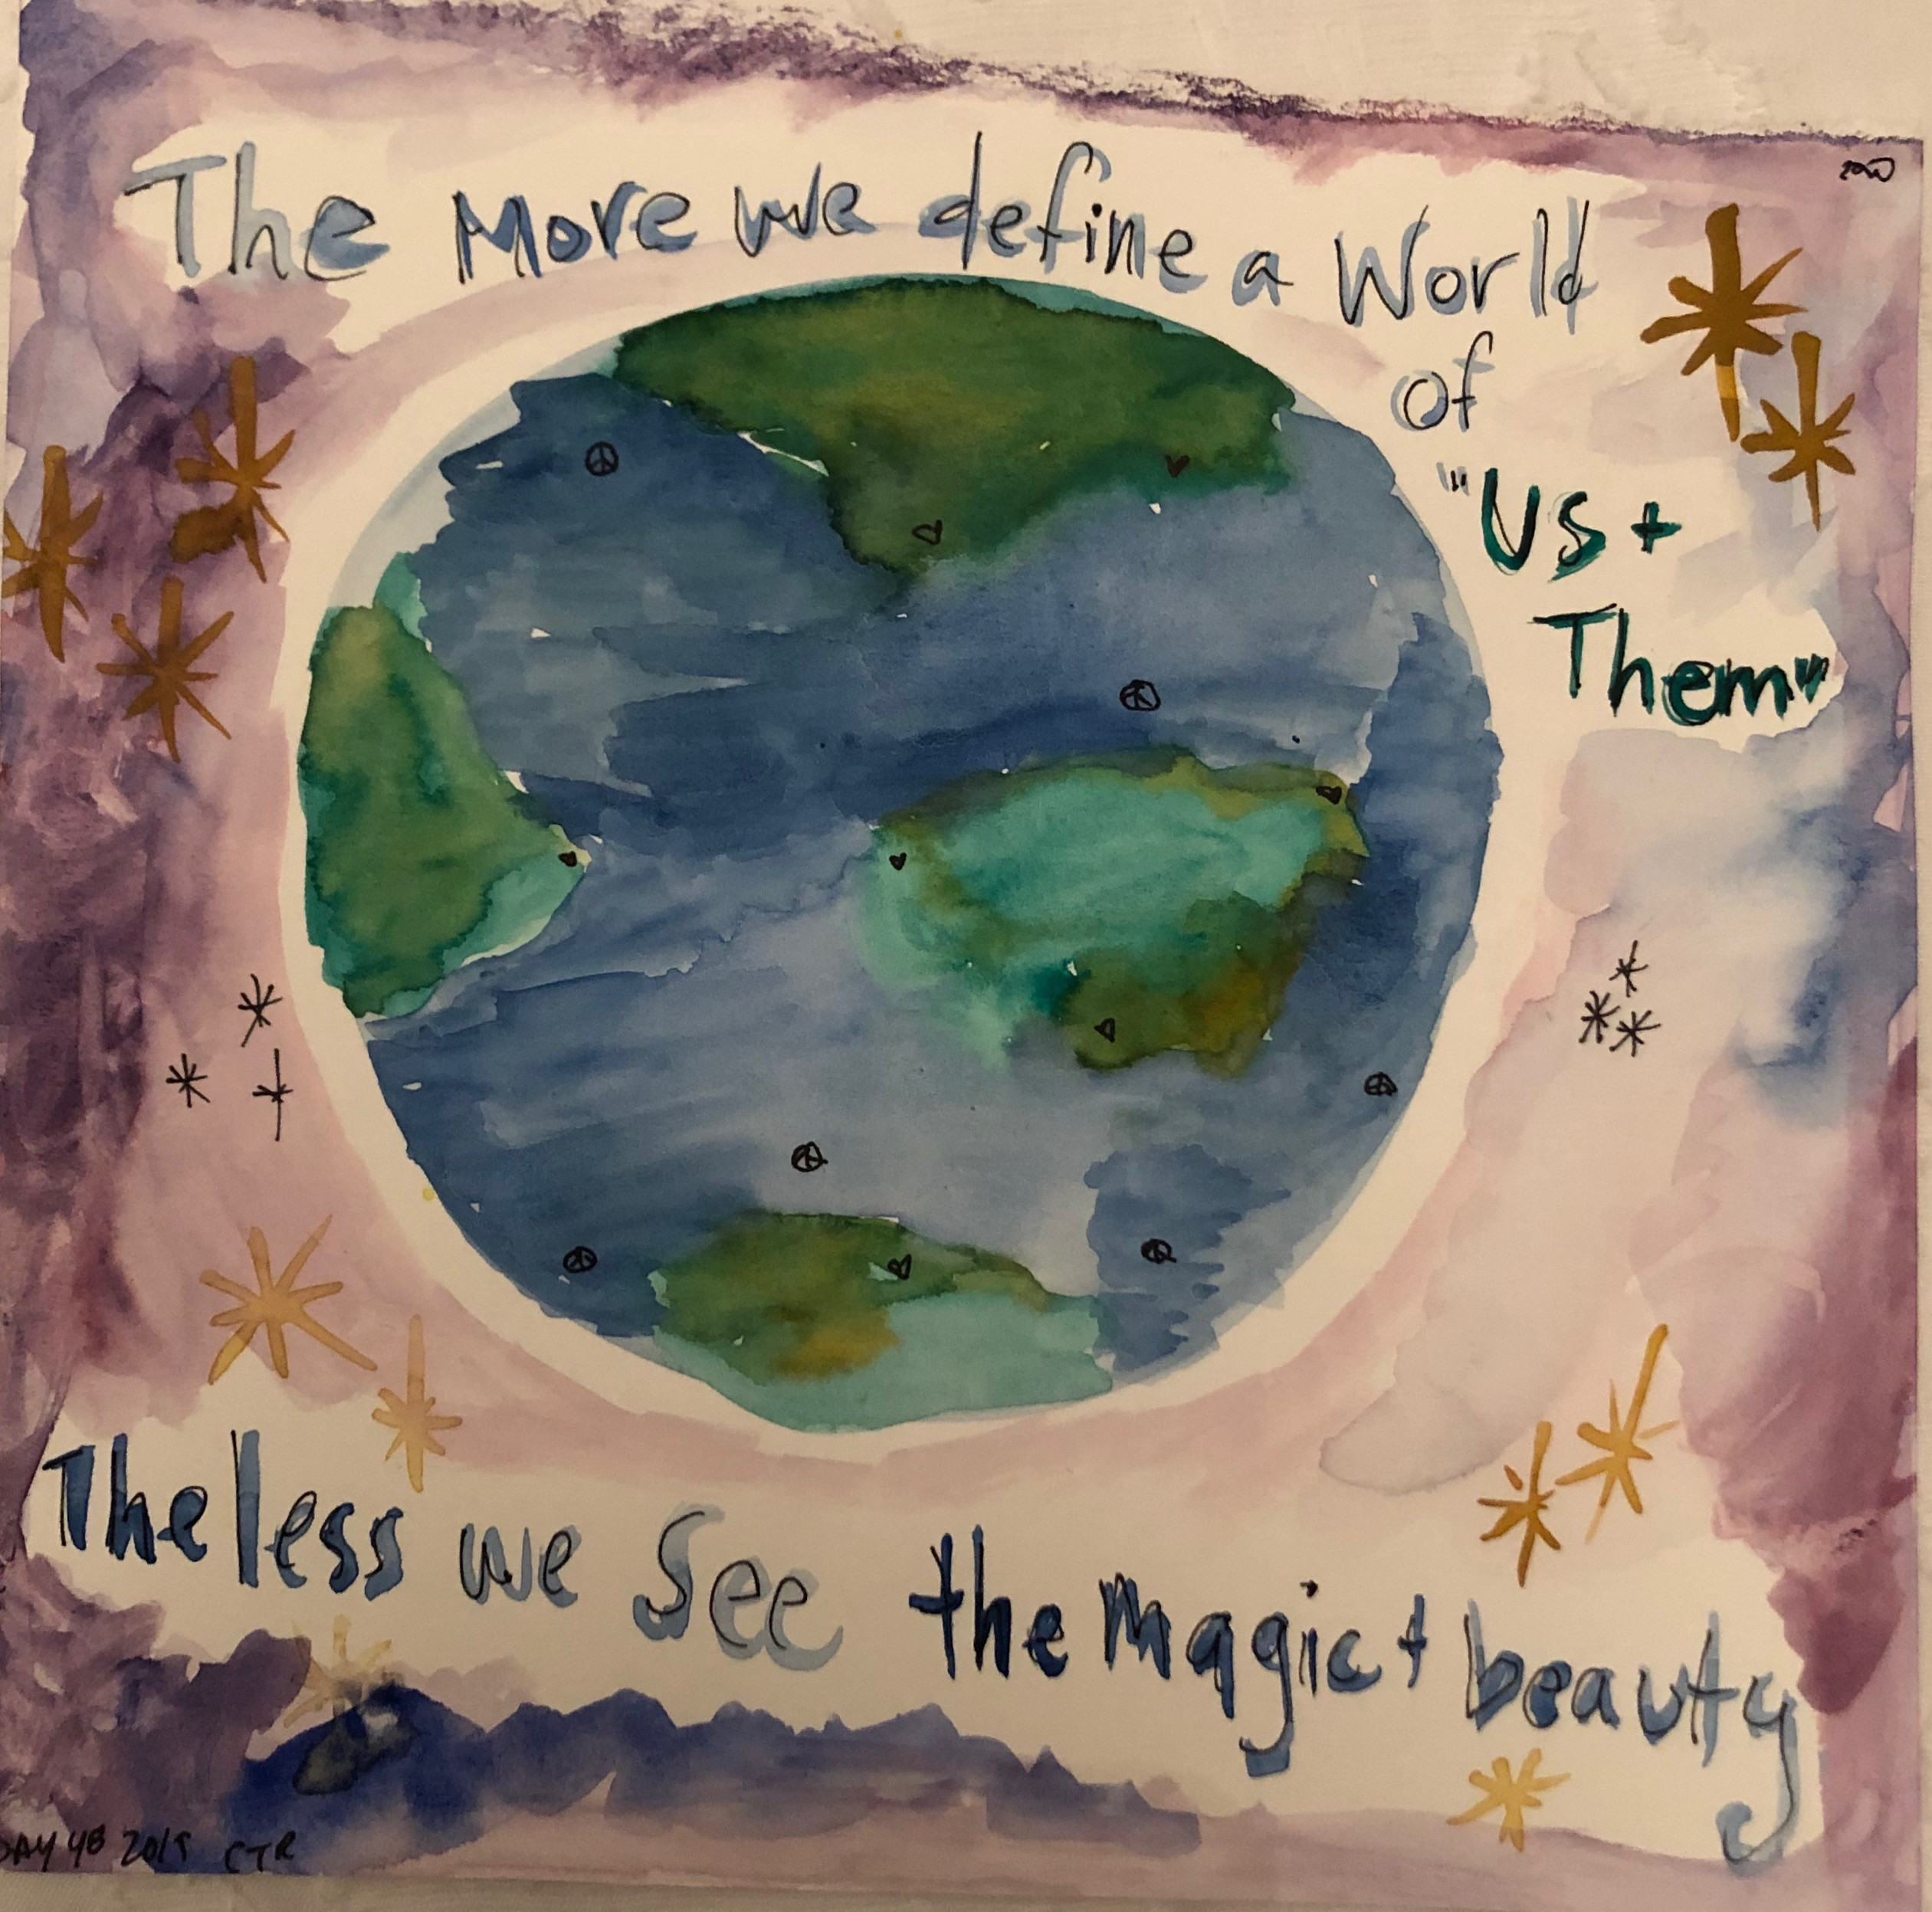 Painting Says: The More We Define Us vs Them, The Less We See The Magical Beauty